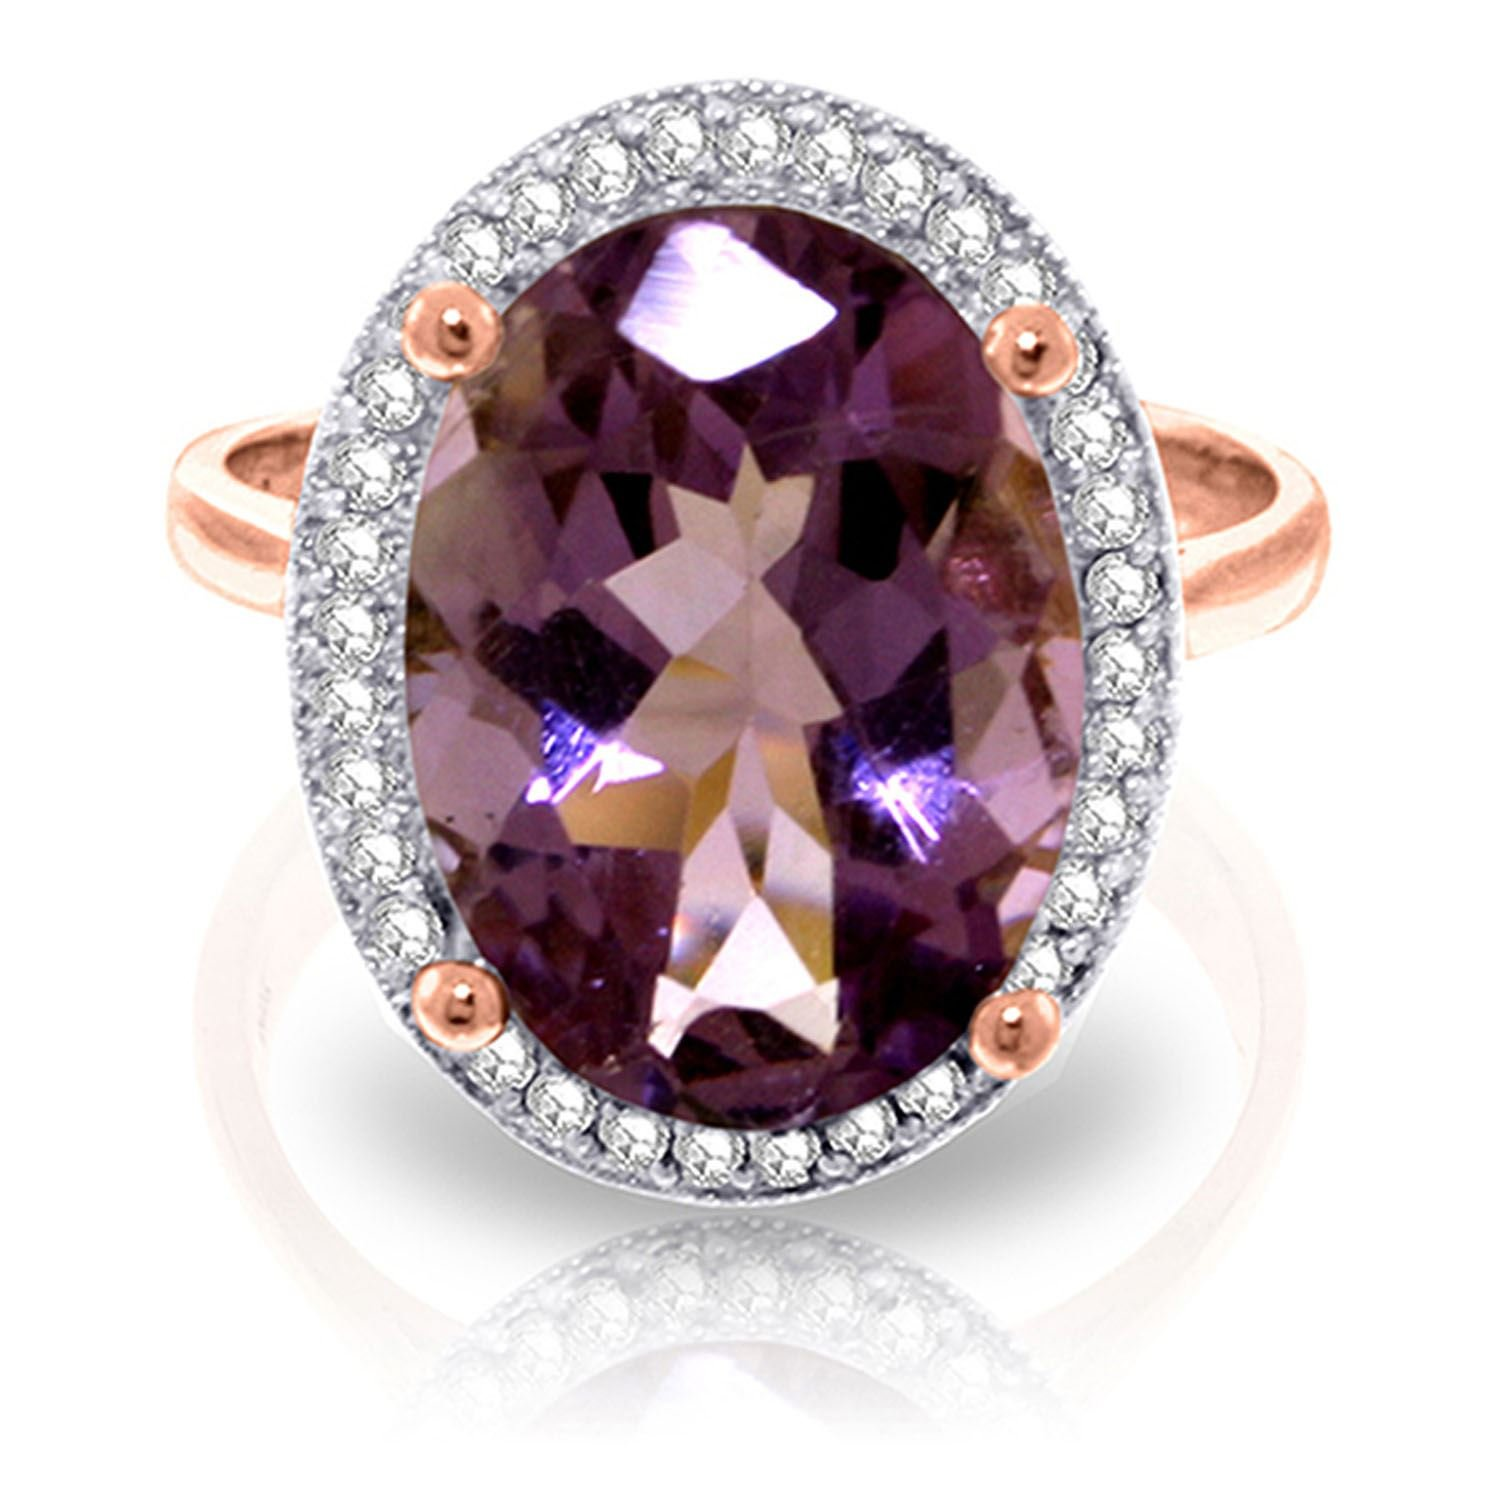 ALARRI 5.28 Carat 14K Solid Rose Gold Loren Amethyst Diamond Ring With Ring Size 6